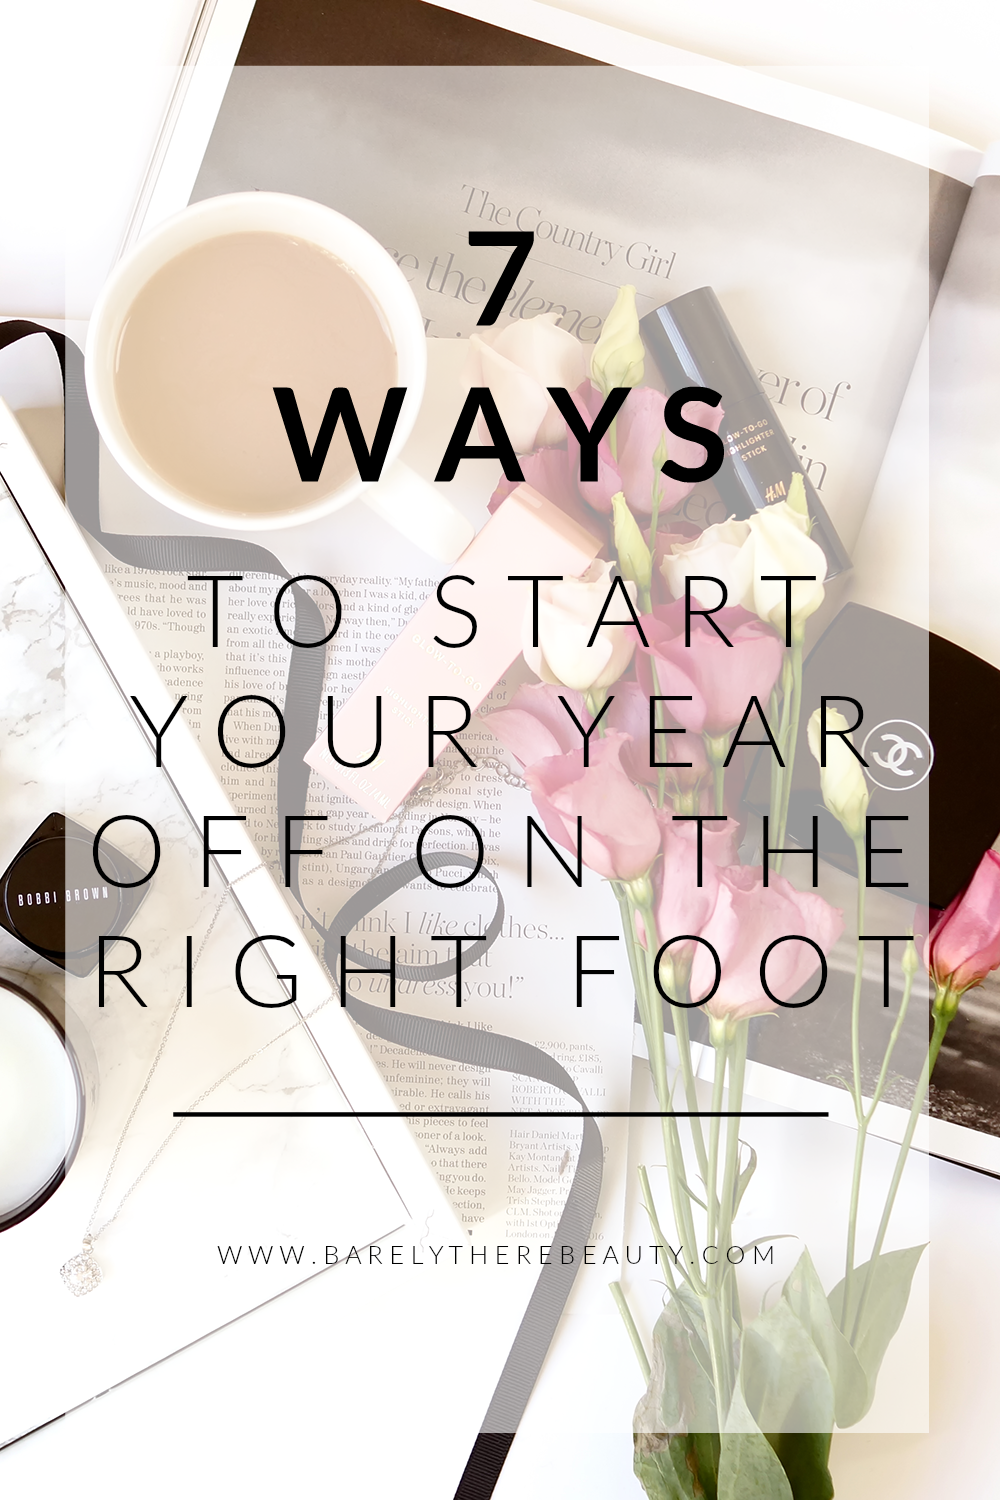 7-ways-start-your-year-right-motivation-tips-lifestyle-pinterest